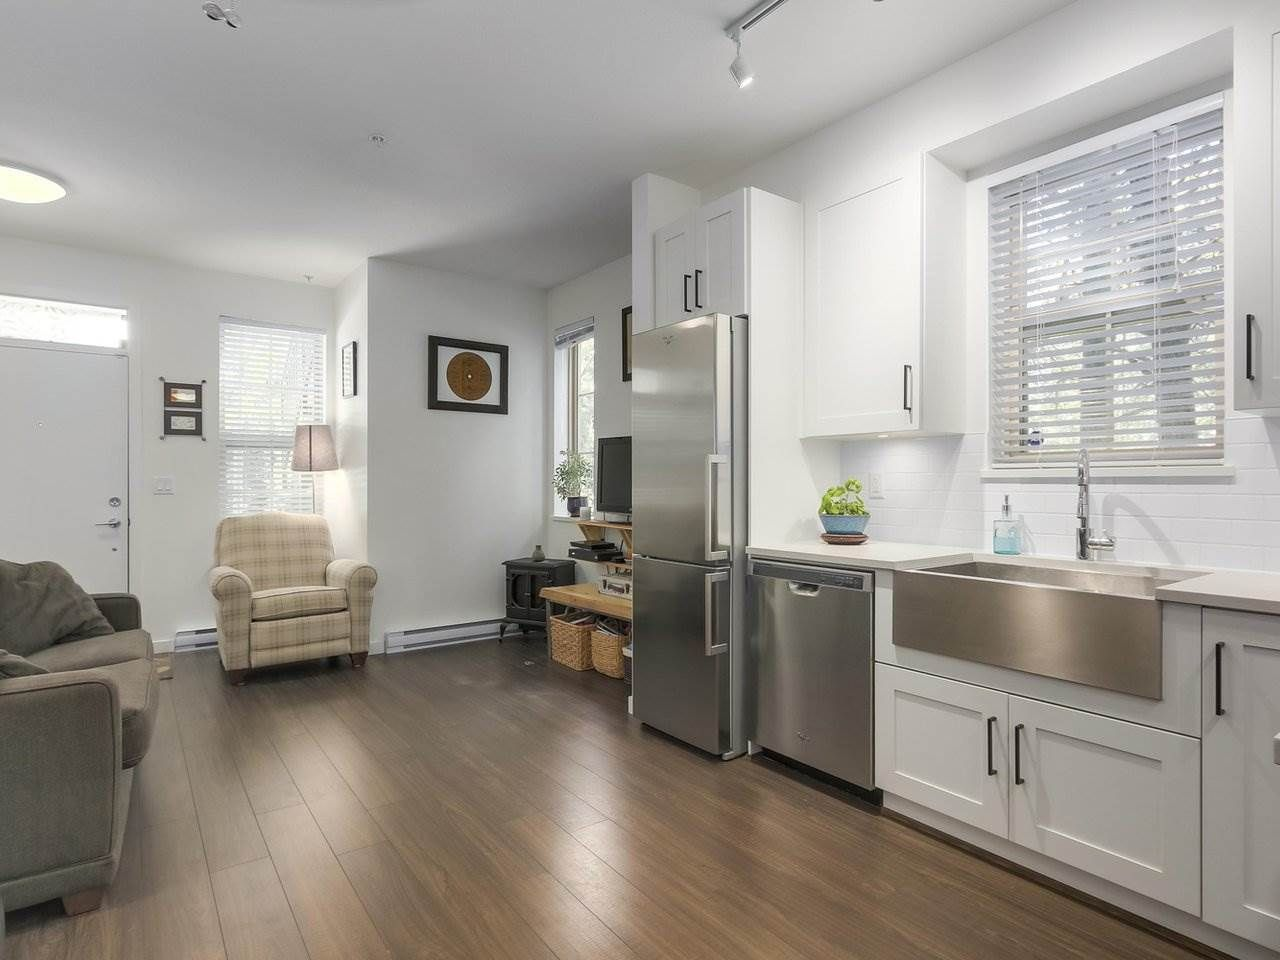 """Main Photo: 31 433 SEYMOUR RIVER Place in North Vancouver: Seymour NV Townhouse for sale in """"MAPLEWOOD PLACE"""" : MLS®# R2265874"""